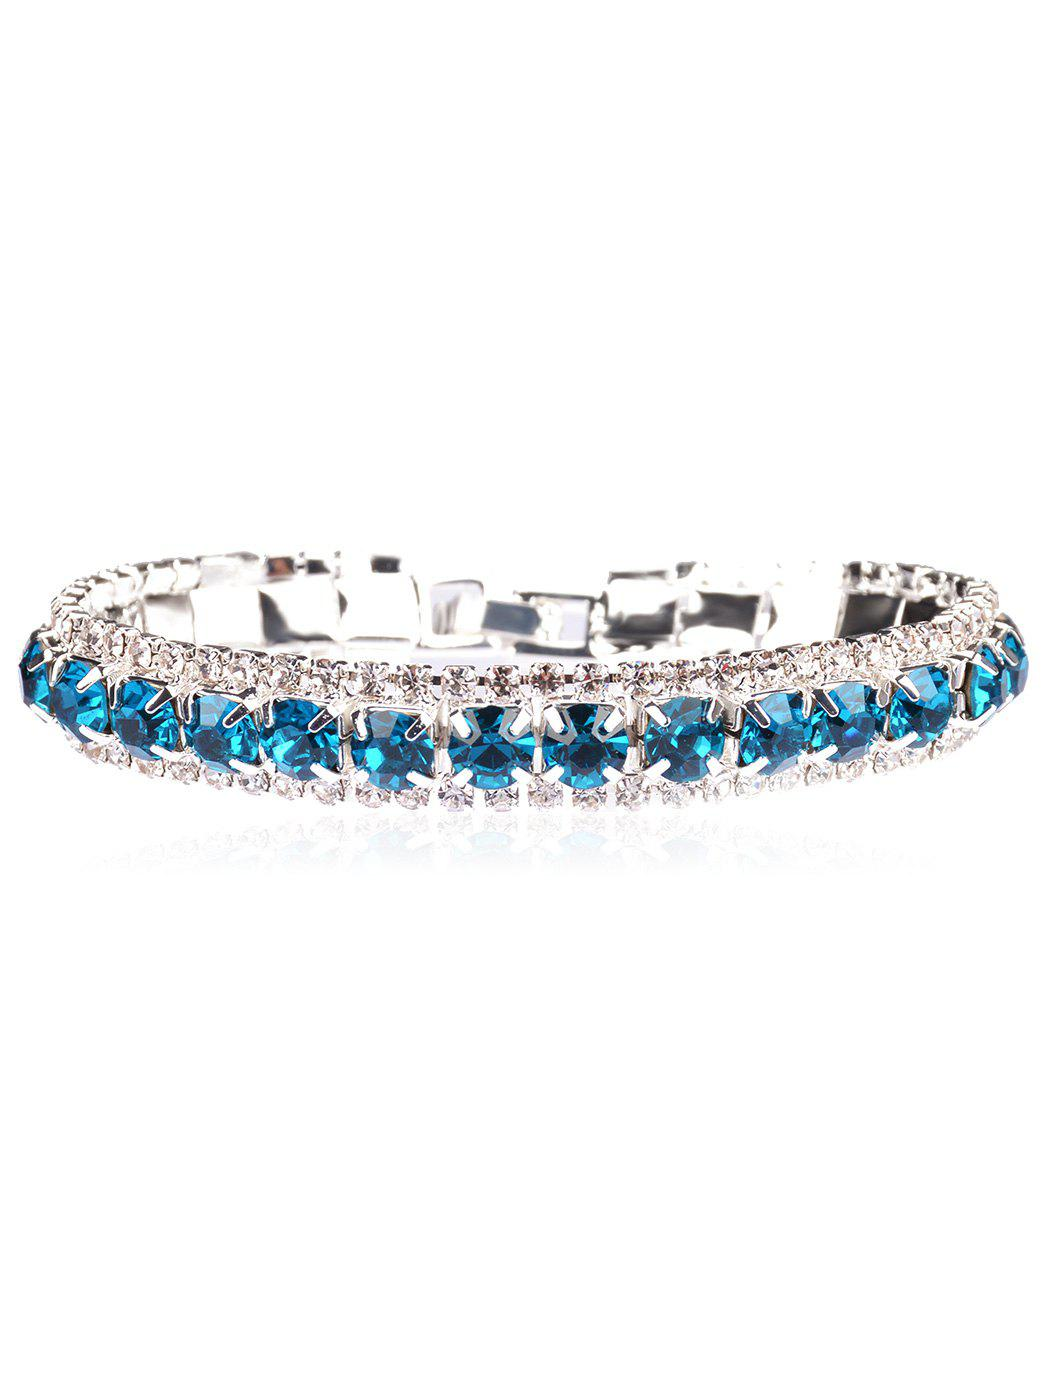 Sparkly Rhinestoned Alloy Link Chain Bracelet - WINDOWS BLUE